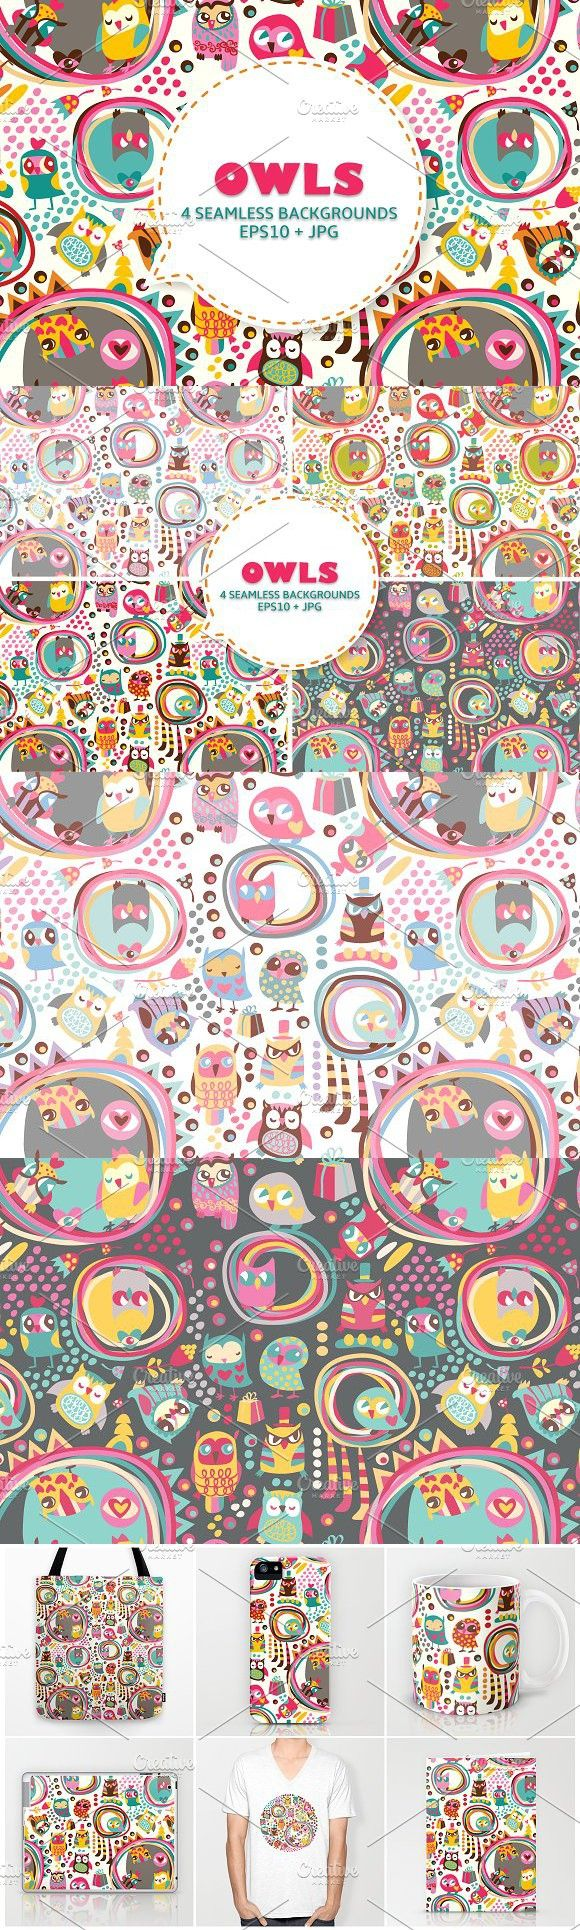 Cute owls seamless background. Patterns. $6.00